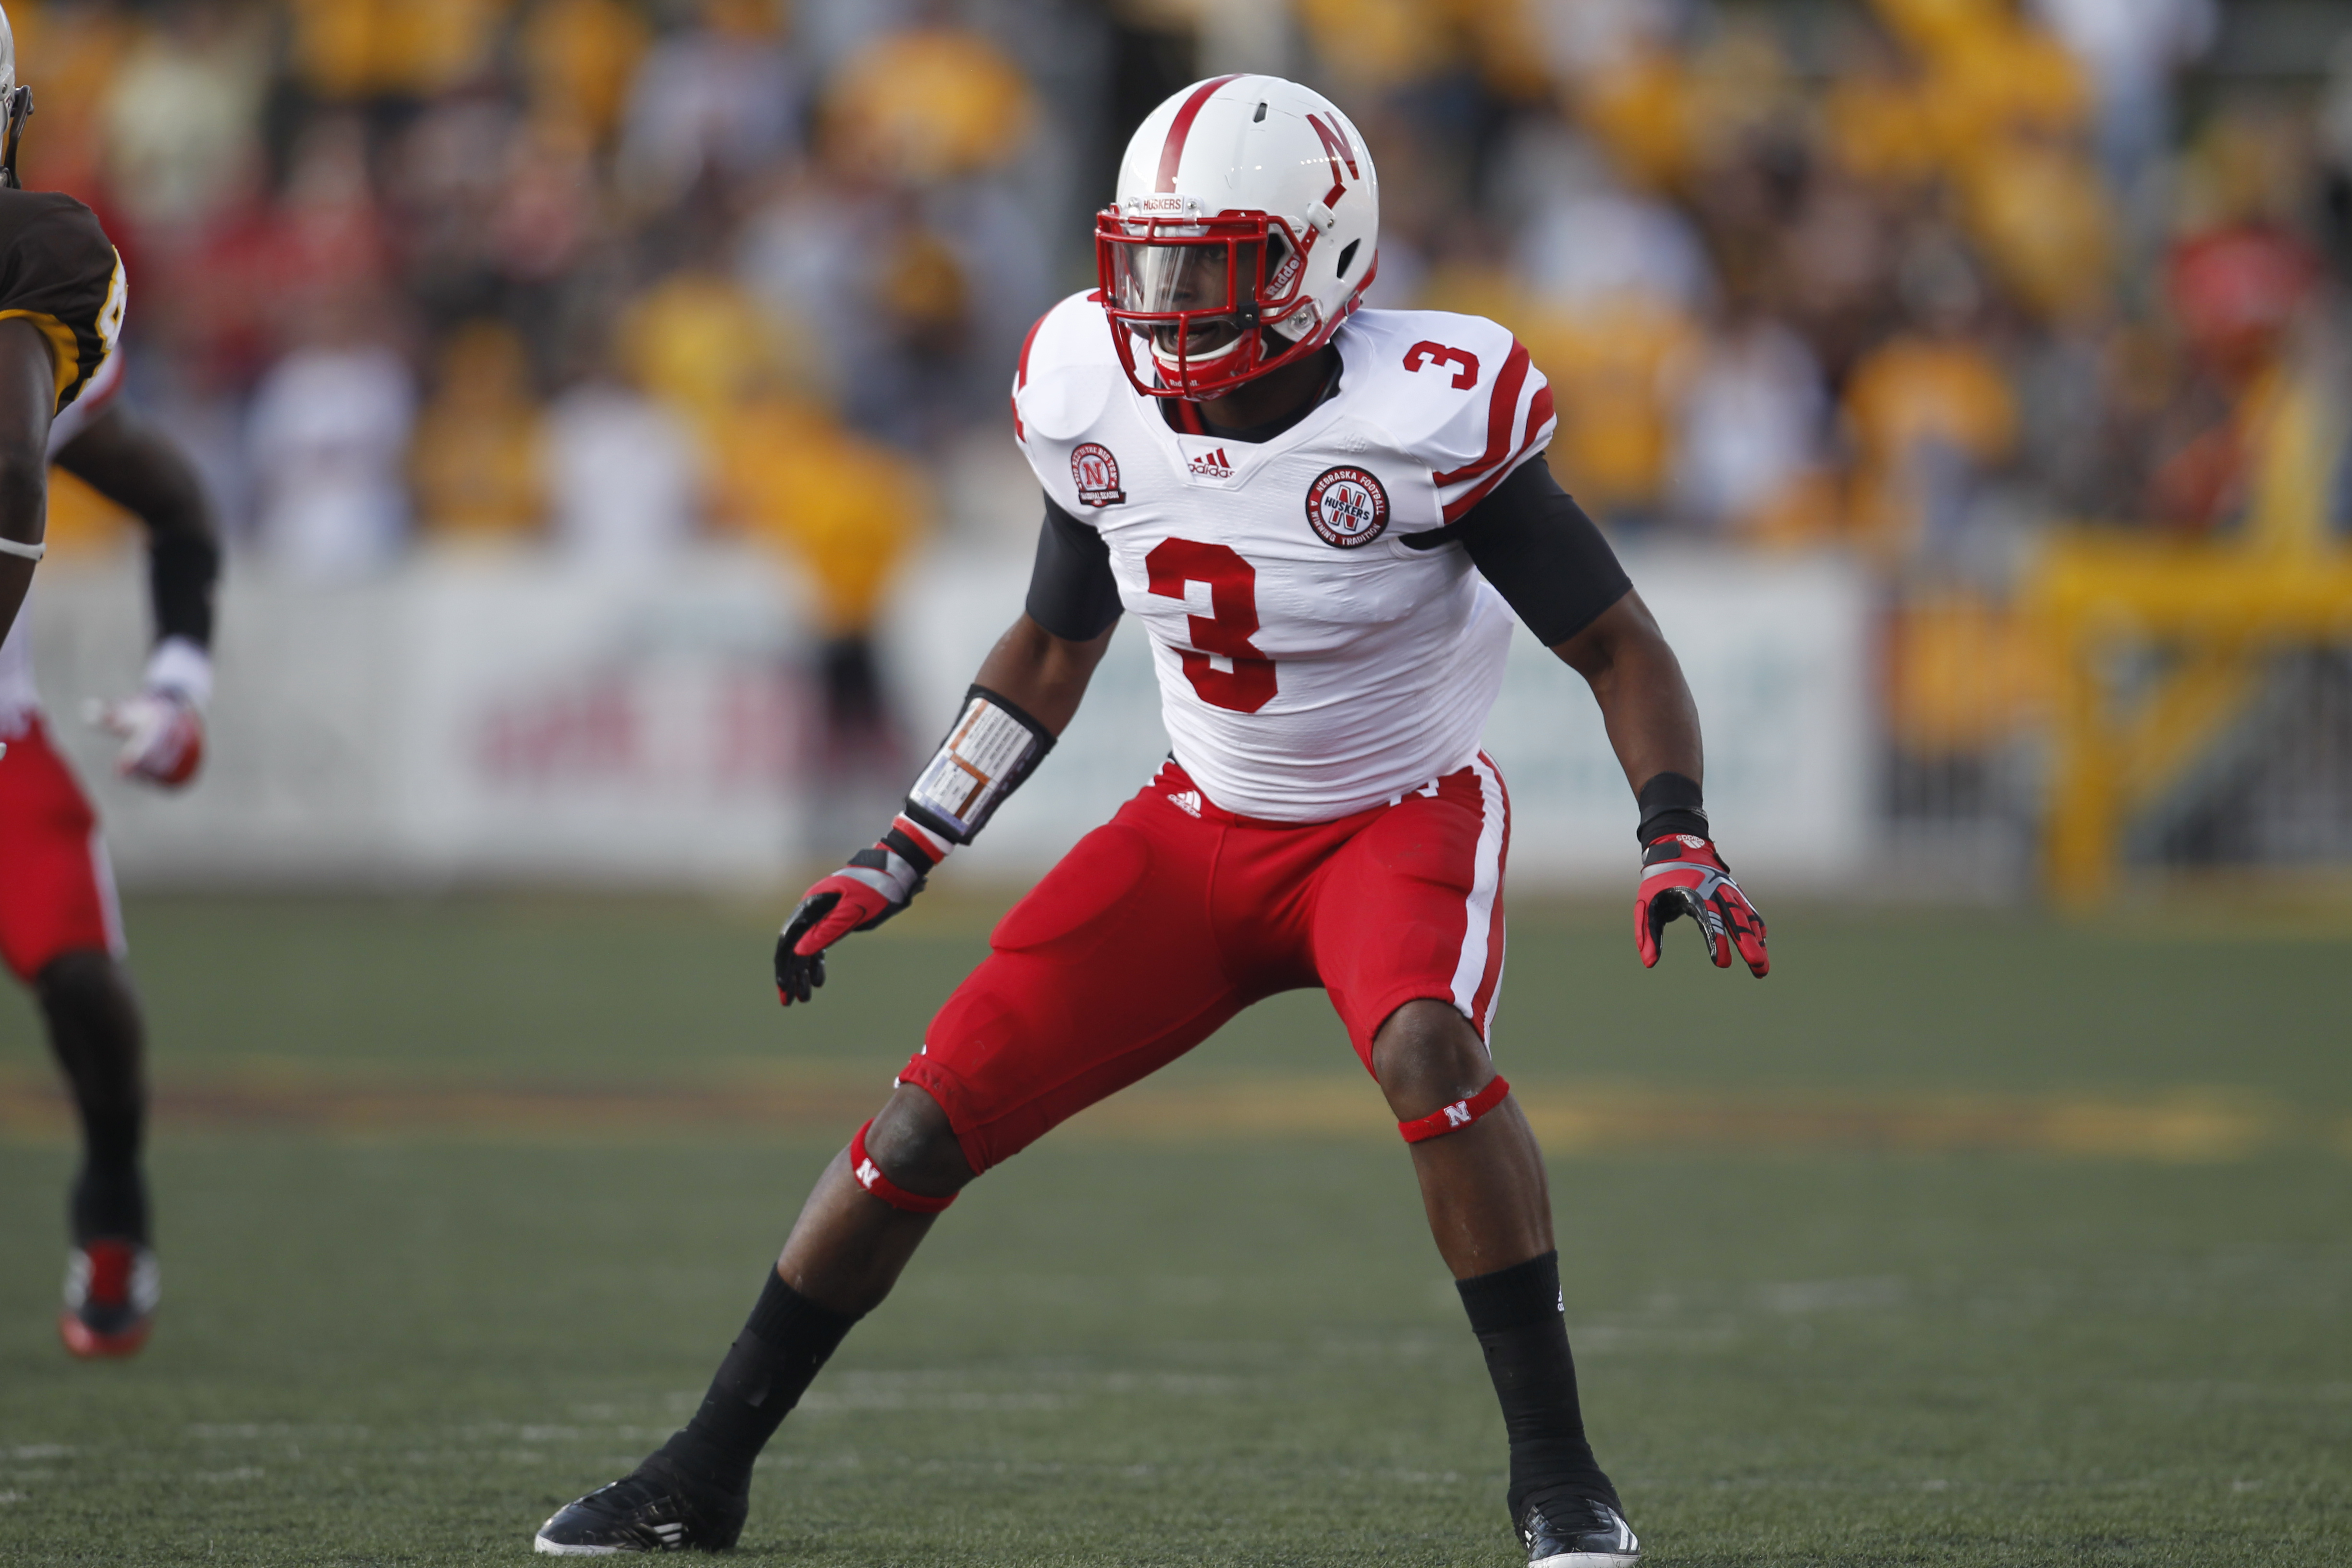 Daimion Stafford has the potential to be one of the top safeties in the nation this fall. (Univ. of Nebraska)